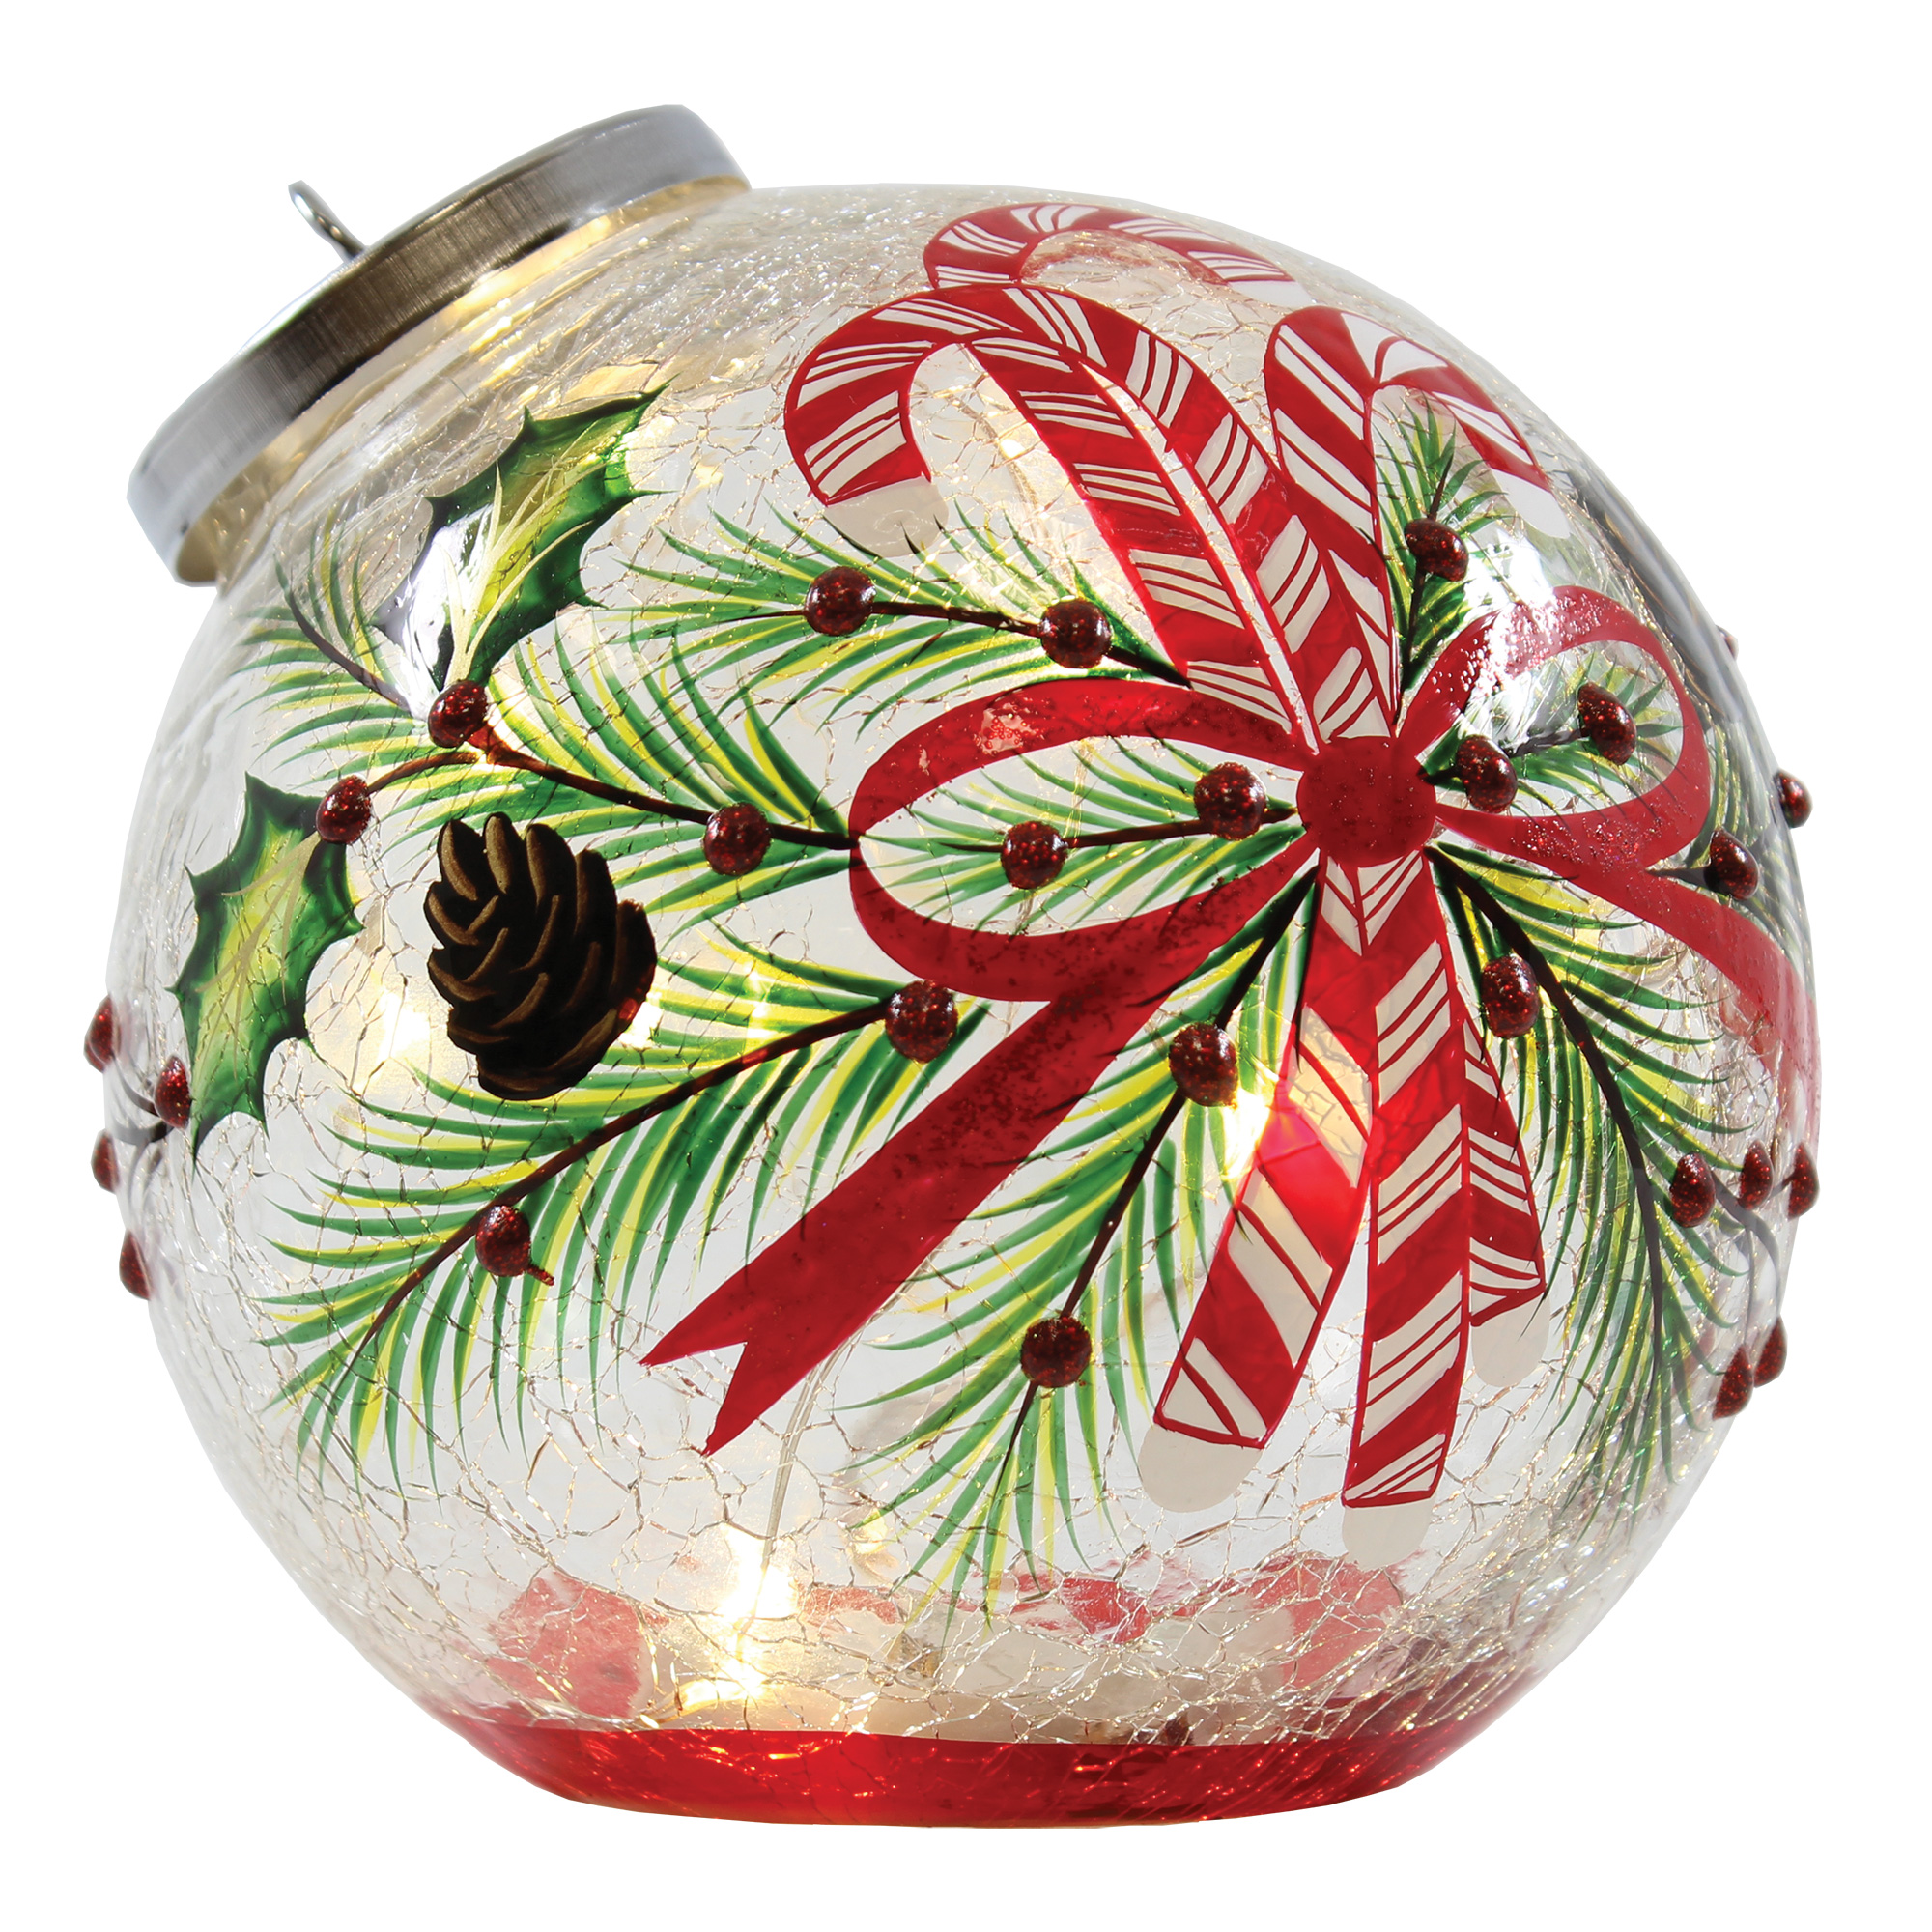 CANDY CANE ORNAMENT WITH LIGHTS